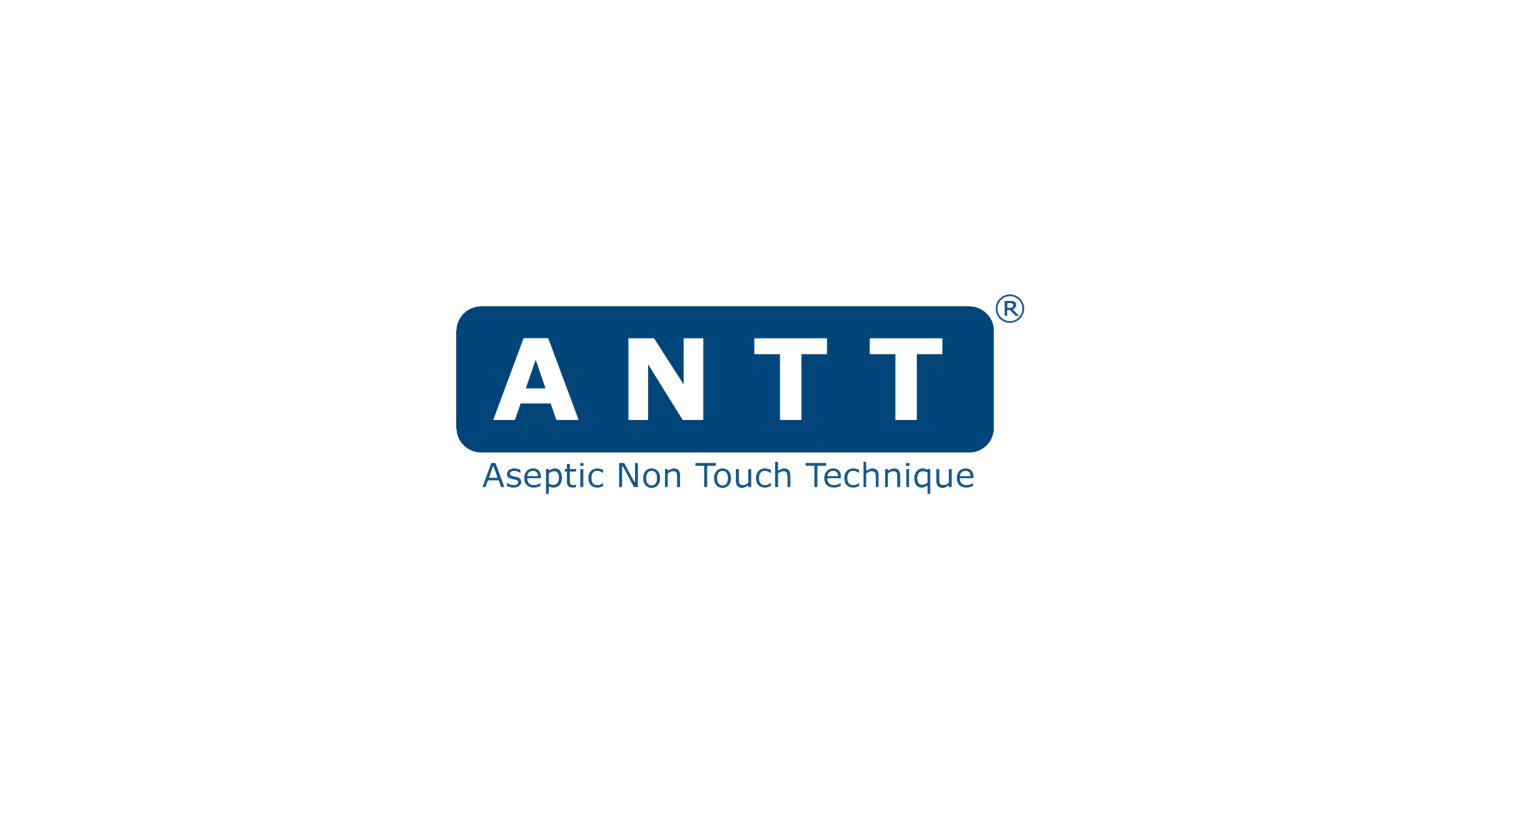 The Official Aseptic Non Touch Technique eLearning Course